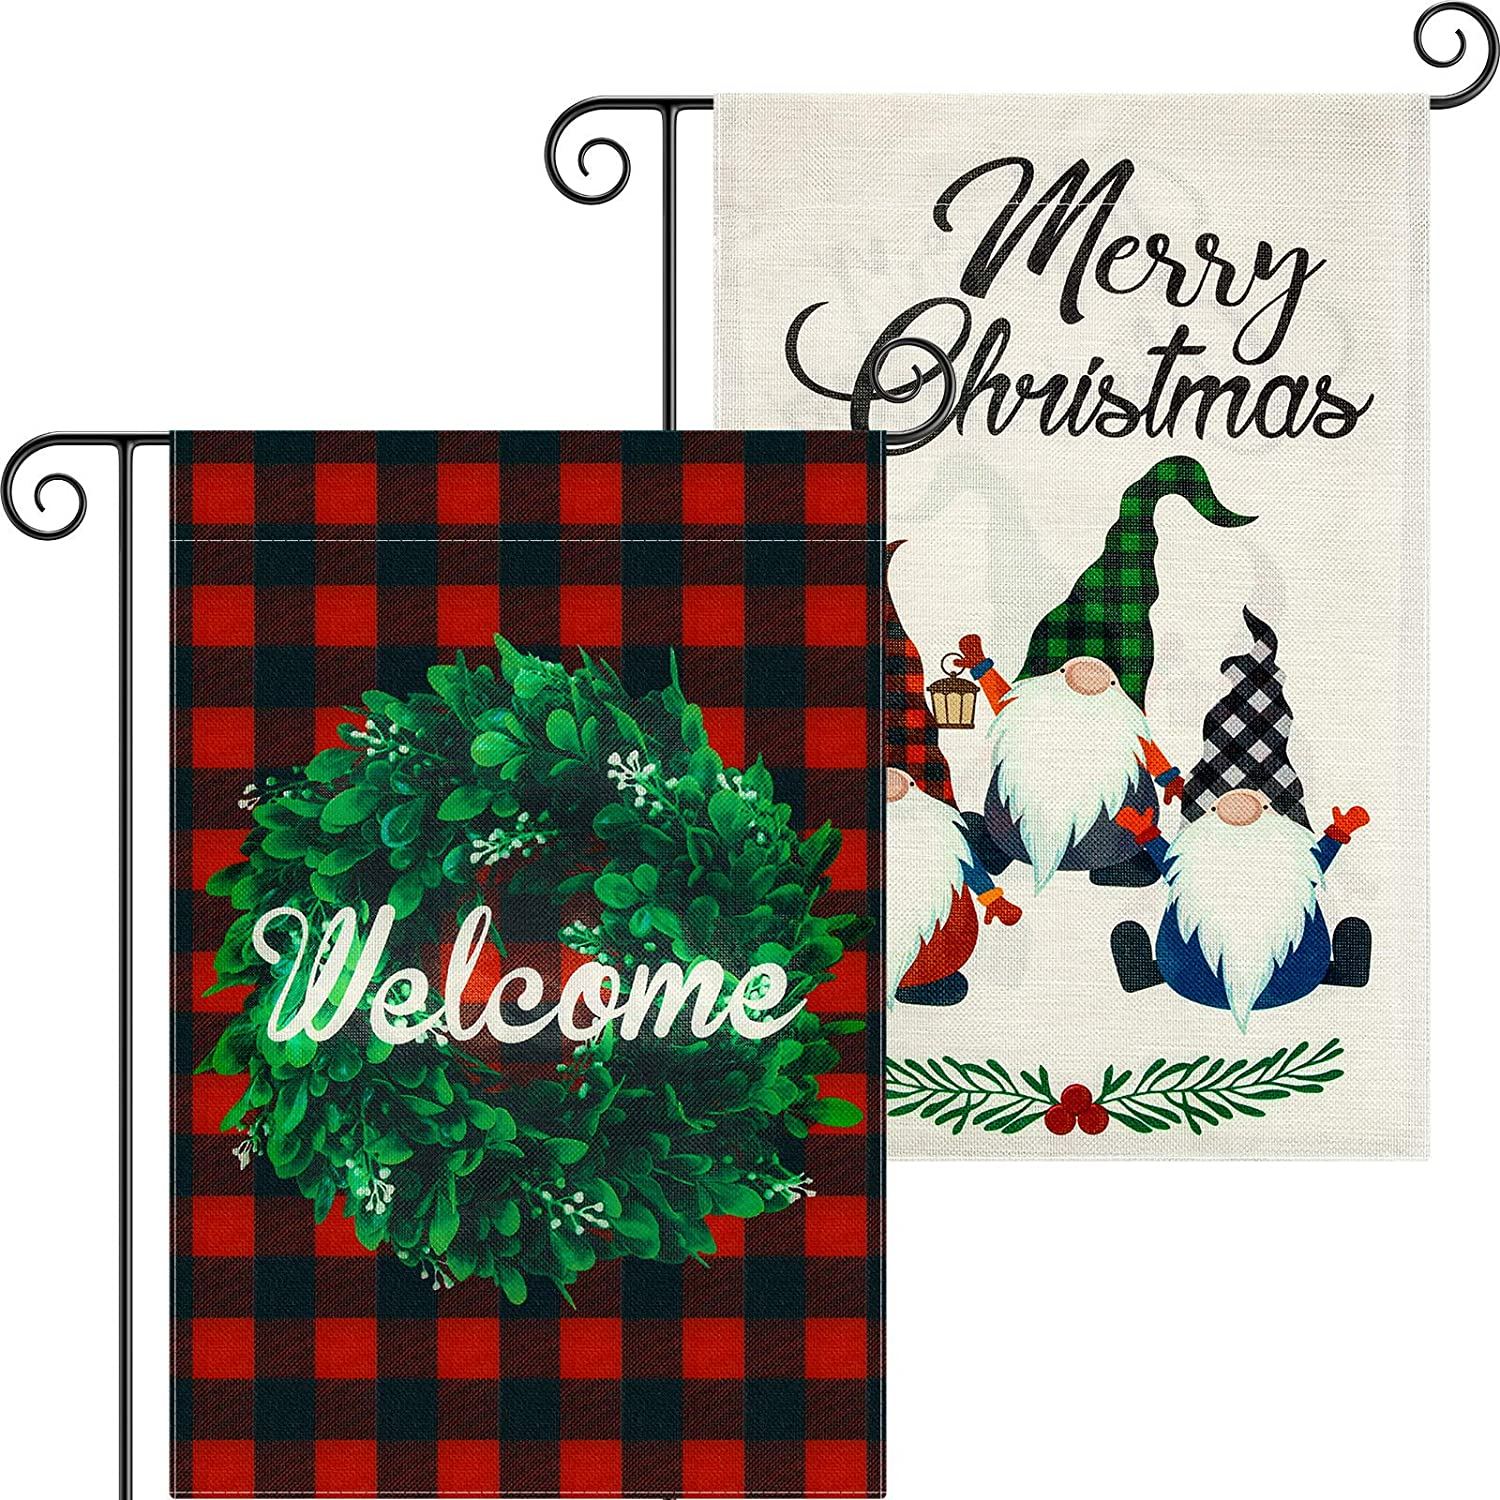 Tatuo 2 Pieces Christmas Garden Flag Double Sided Welcome House Flag with Boxwood Wreath and Santa Merry Christmas Outdoor Decoration Flag for Winter Holidays Garden Decorations, 18.5 x 12.6 Inches